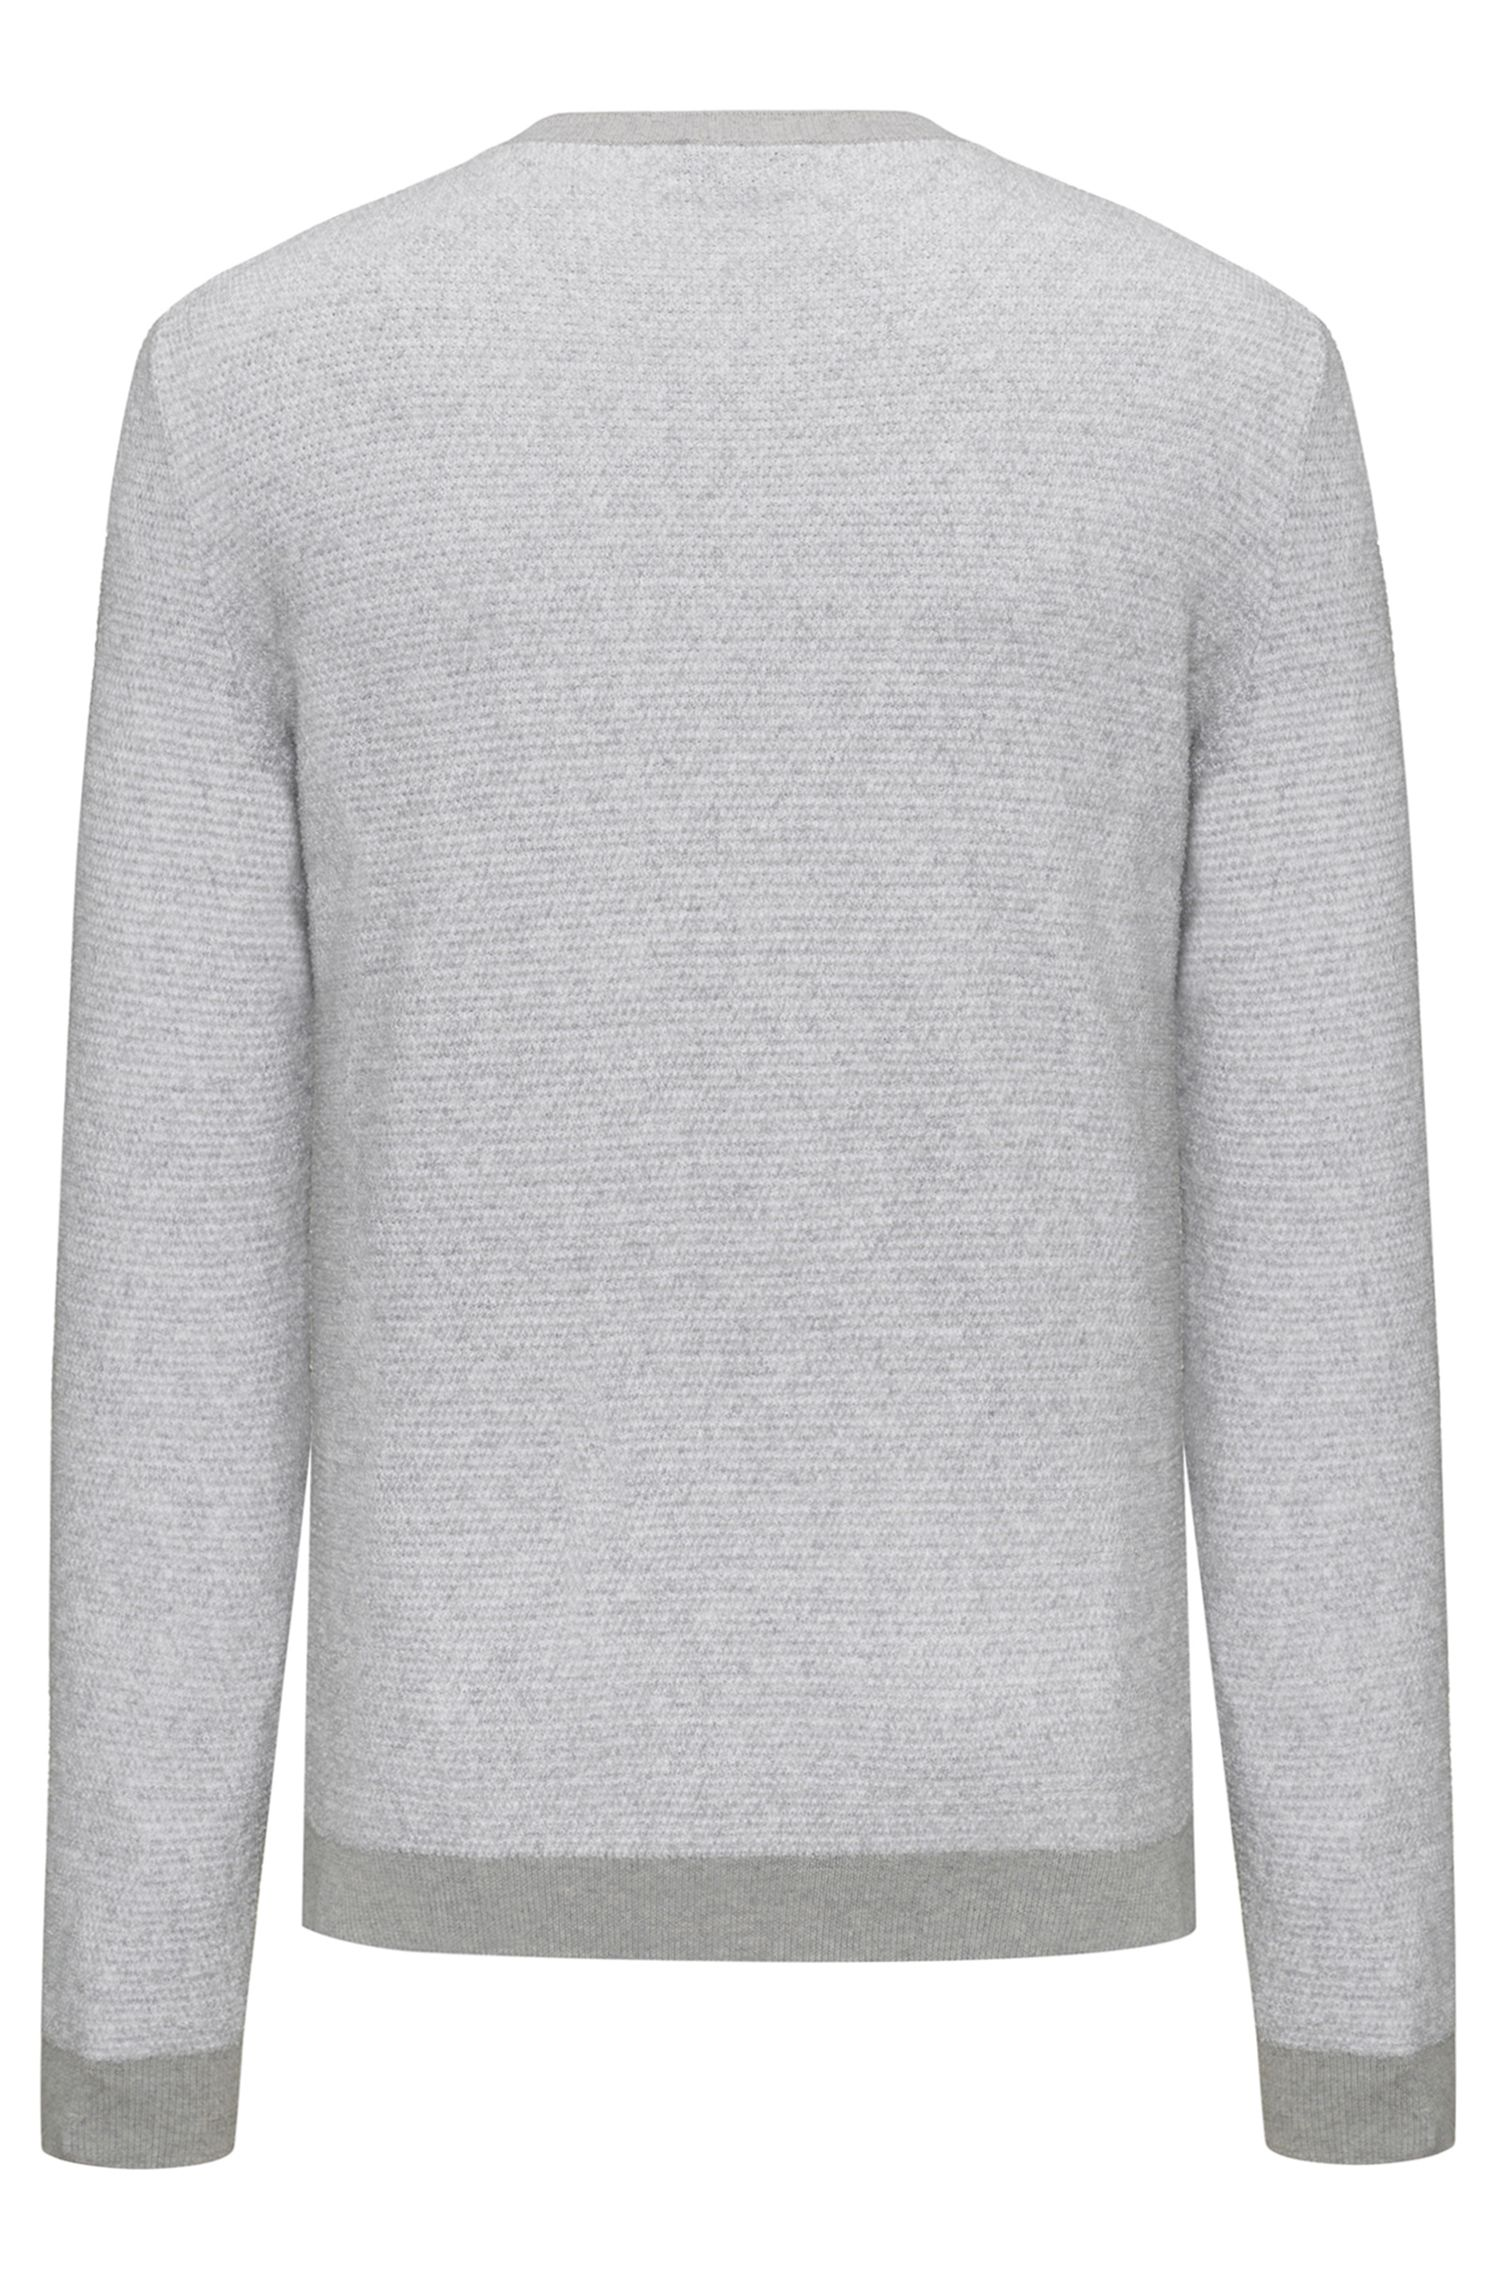 Crew-neck sweater in a structured cotton blend, Grey